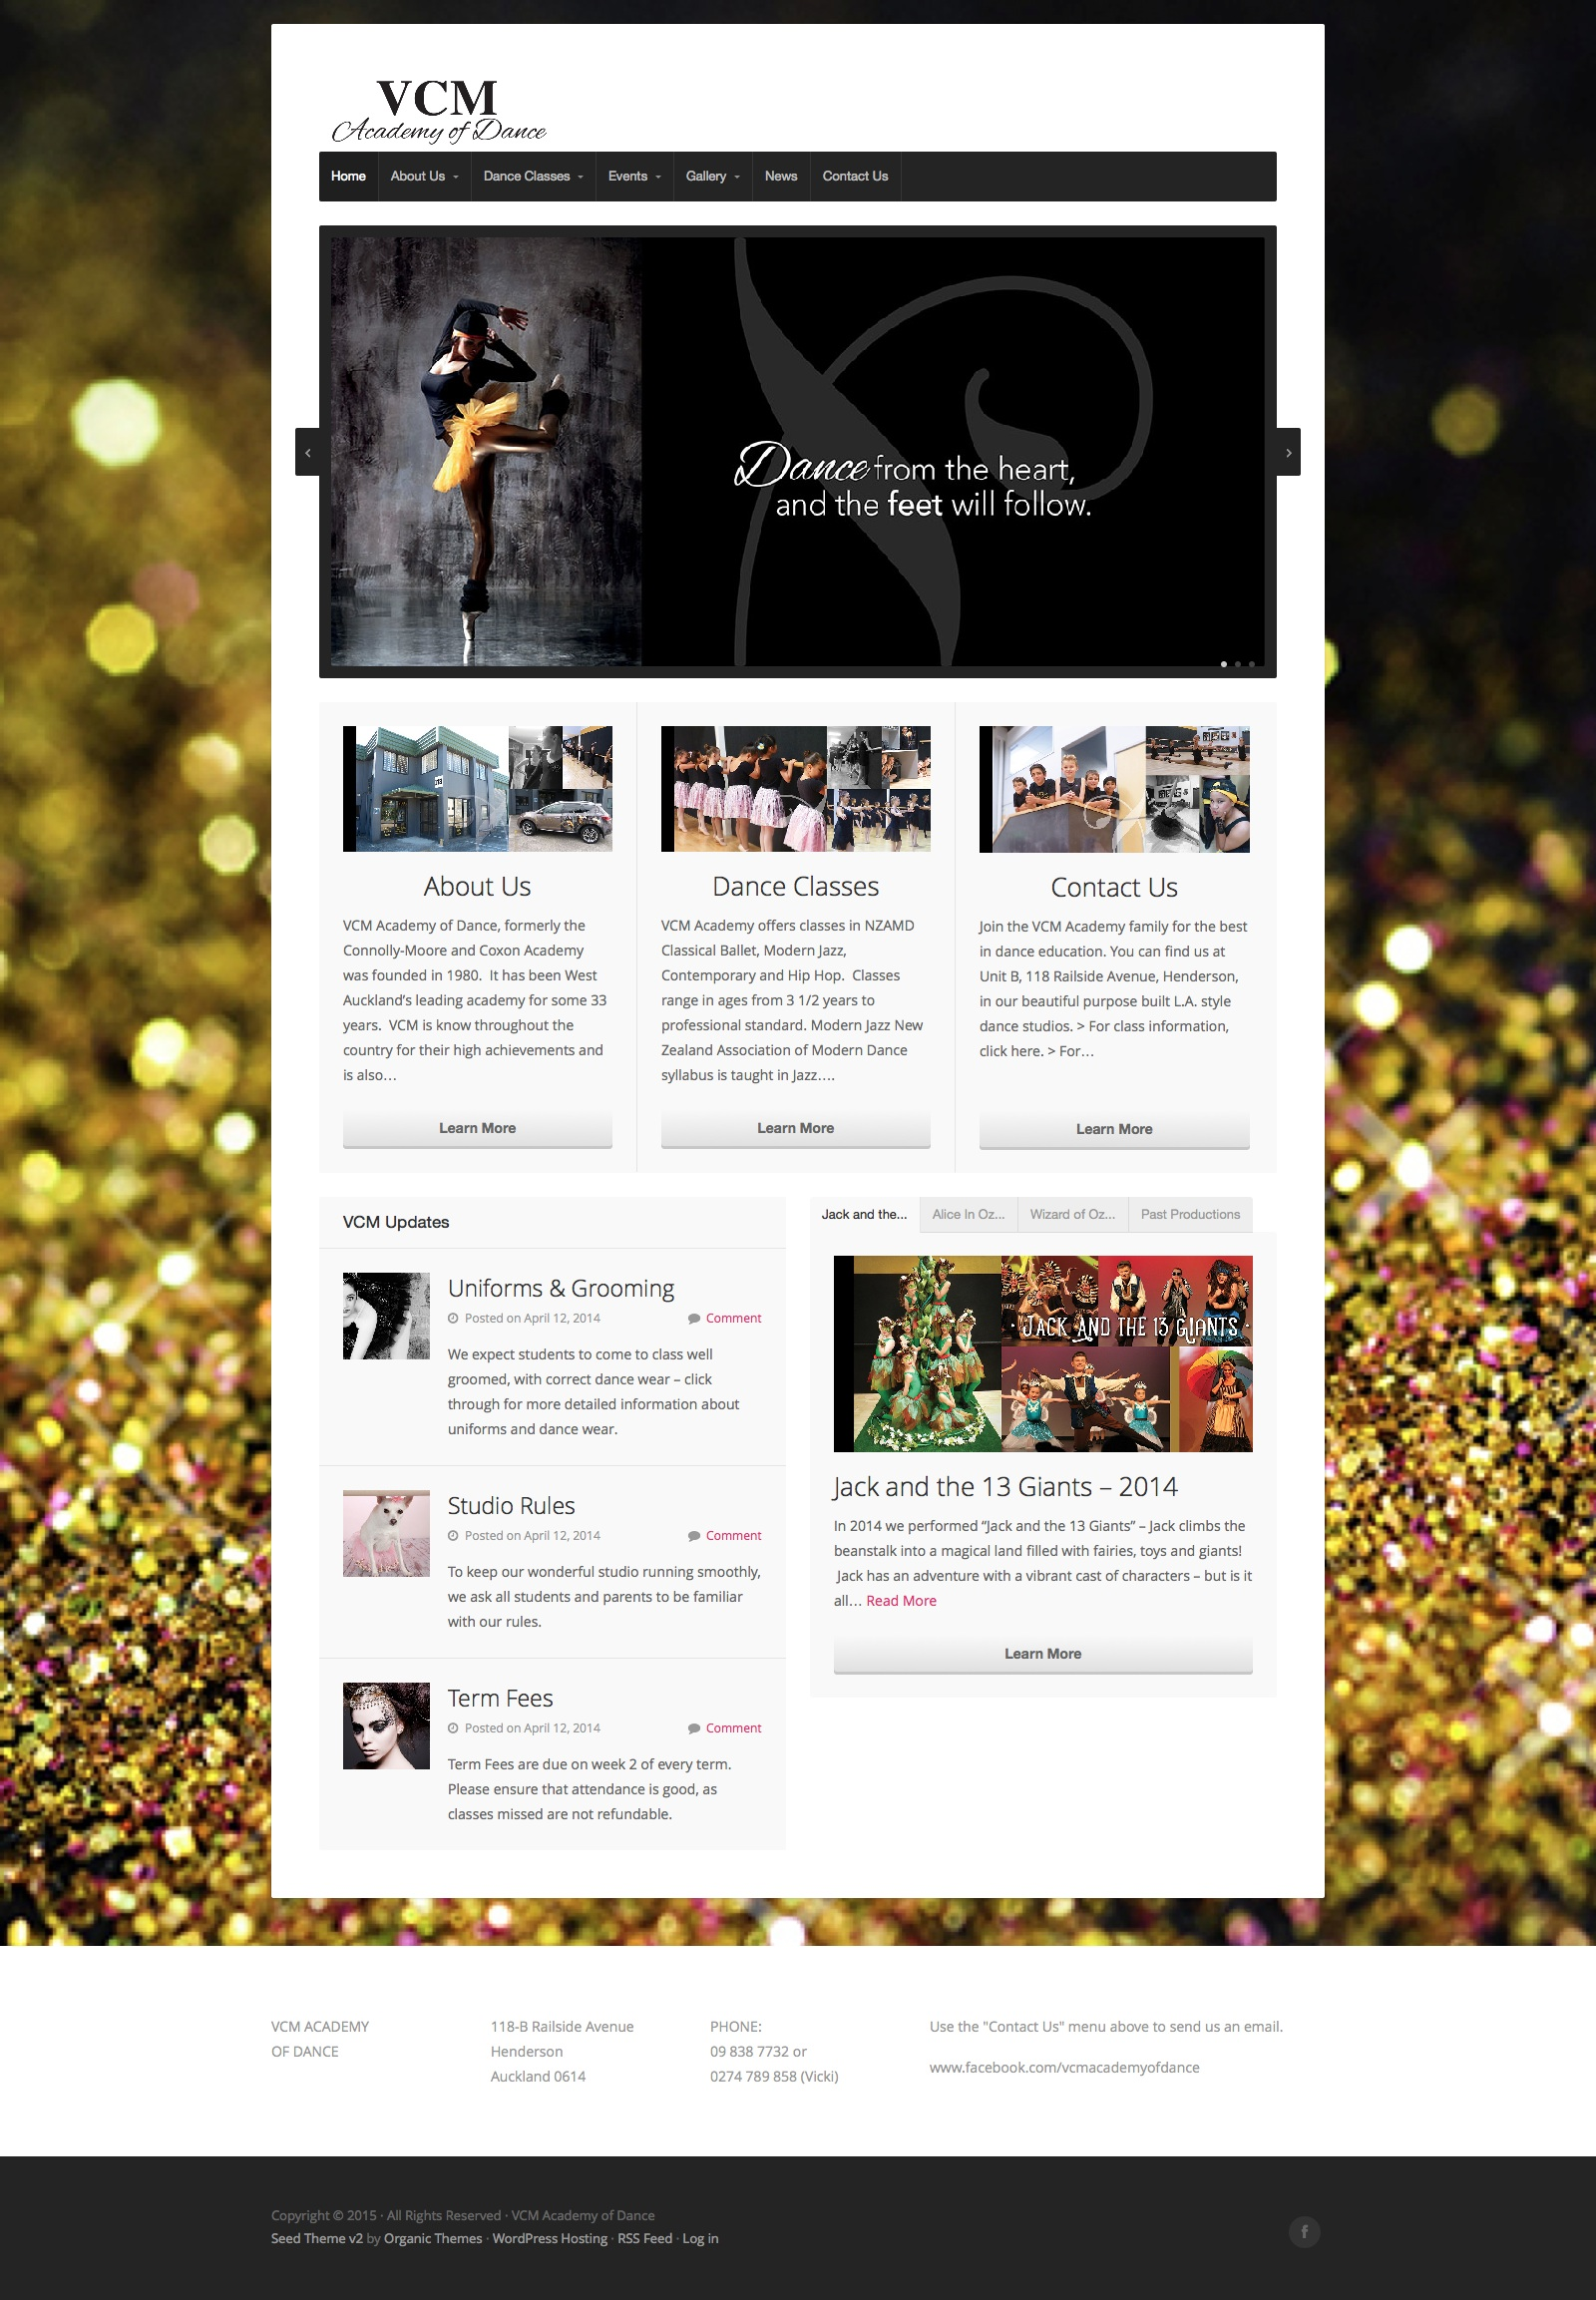 VCM Academy of Dance West Auckland website homepage